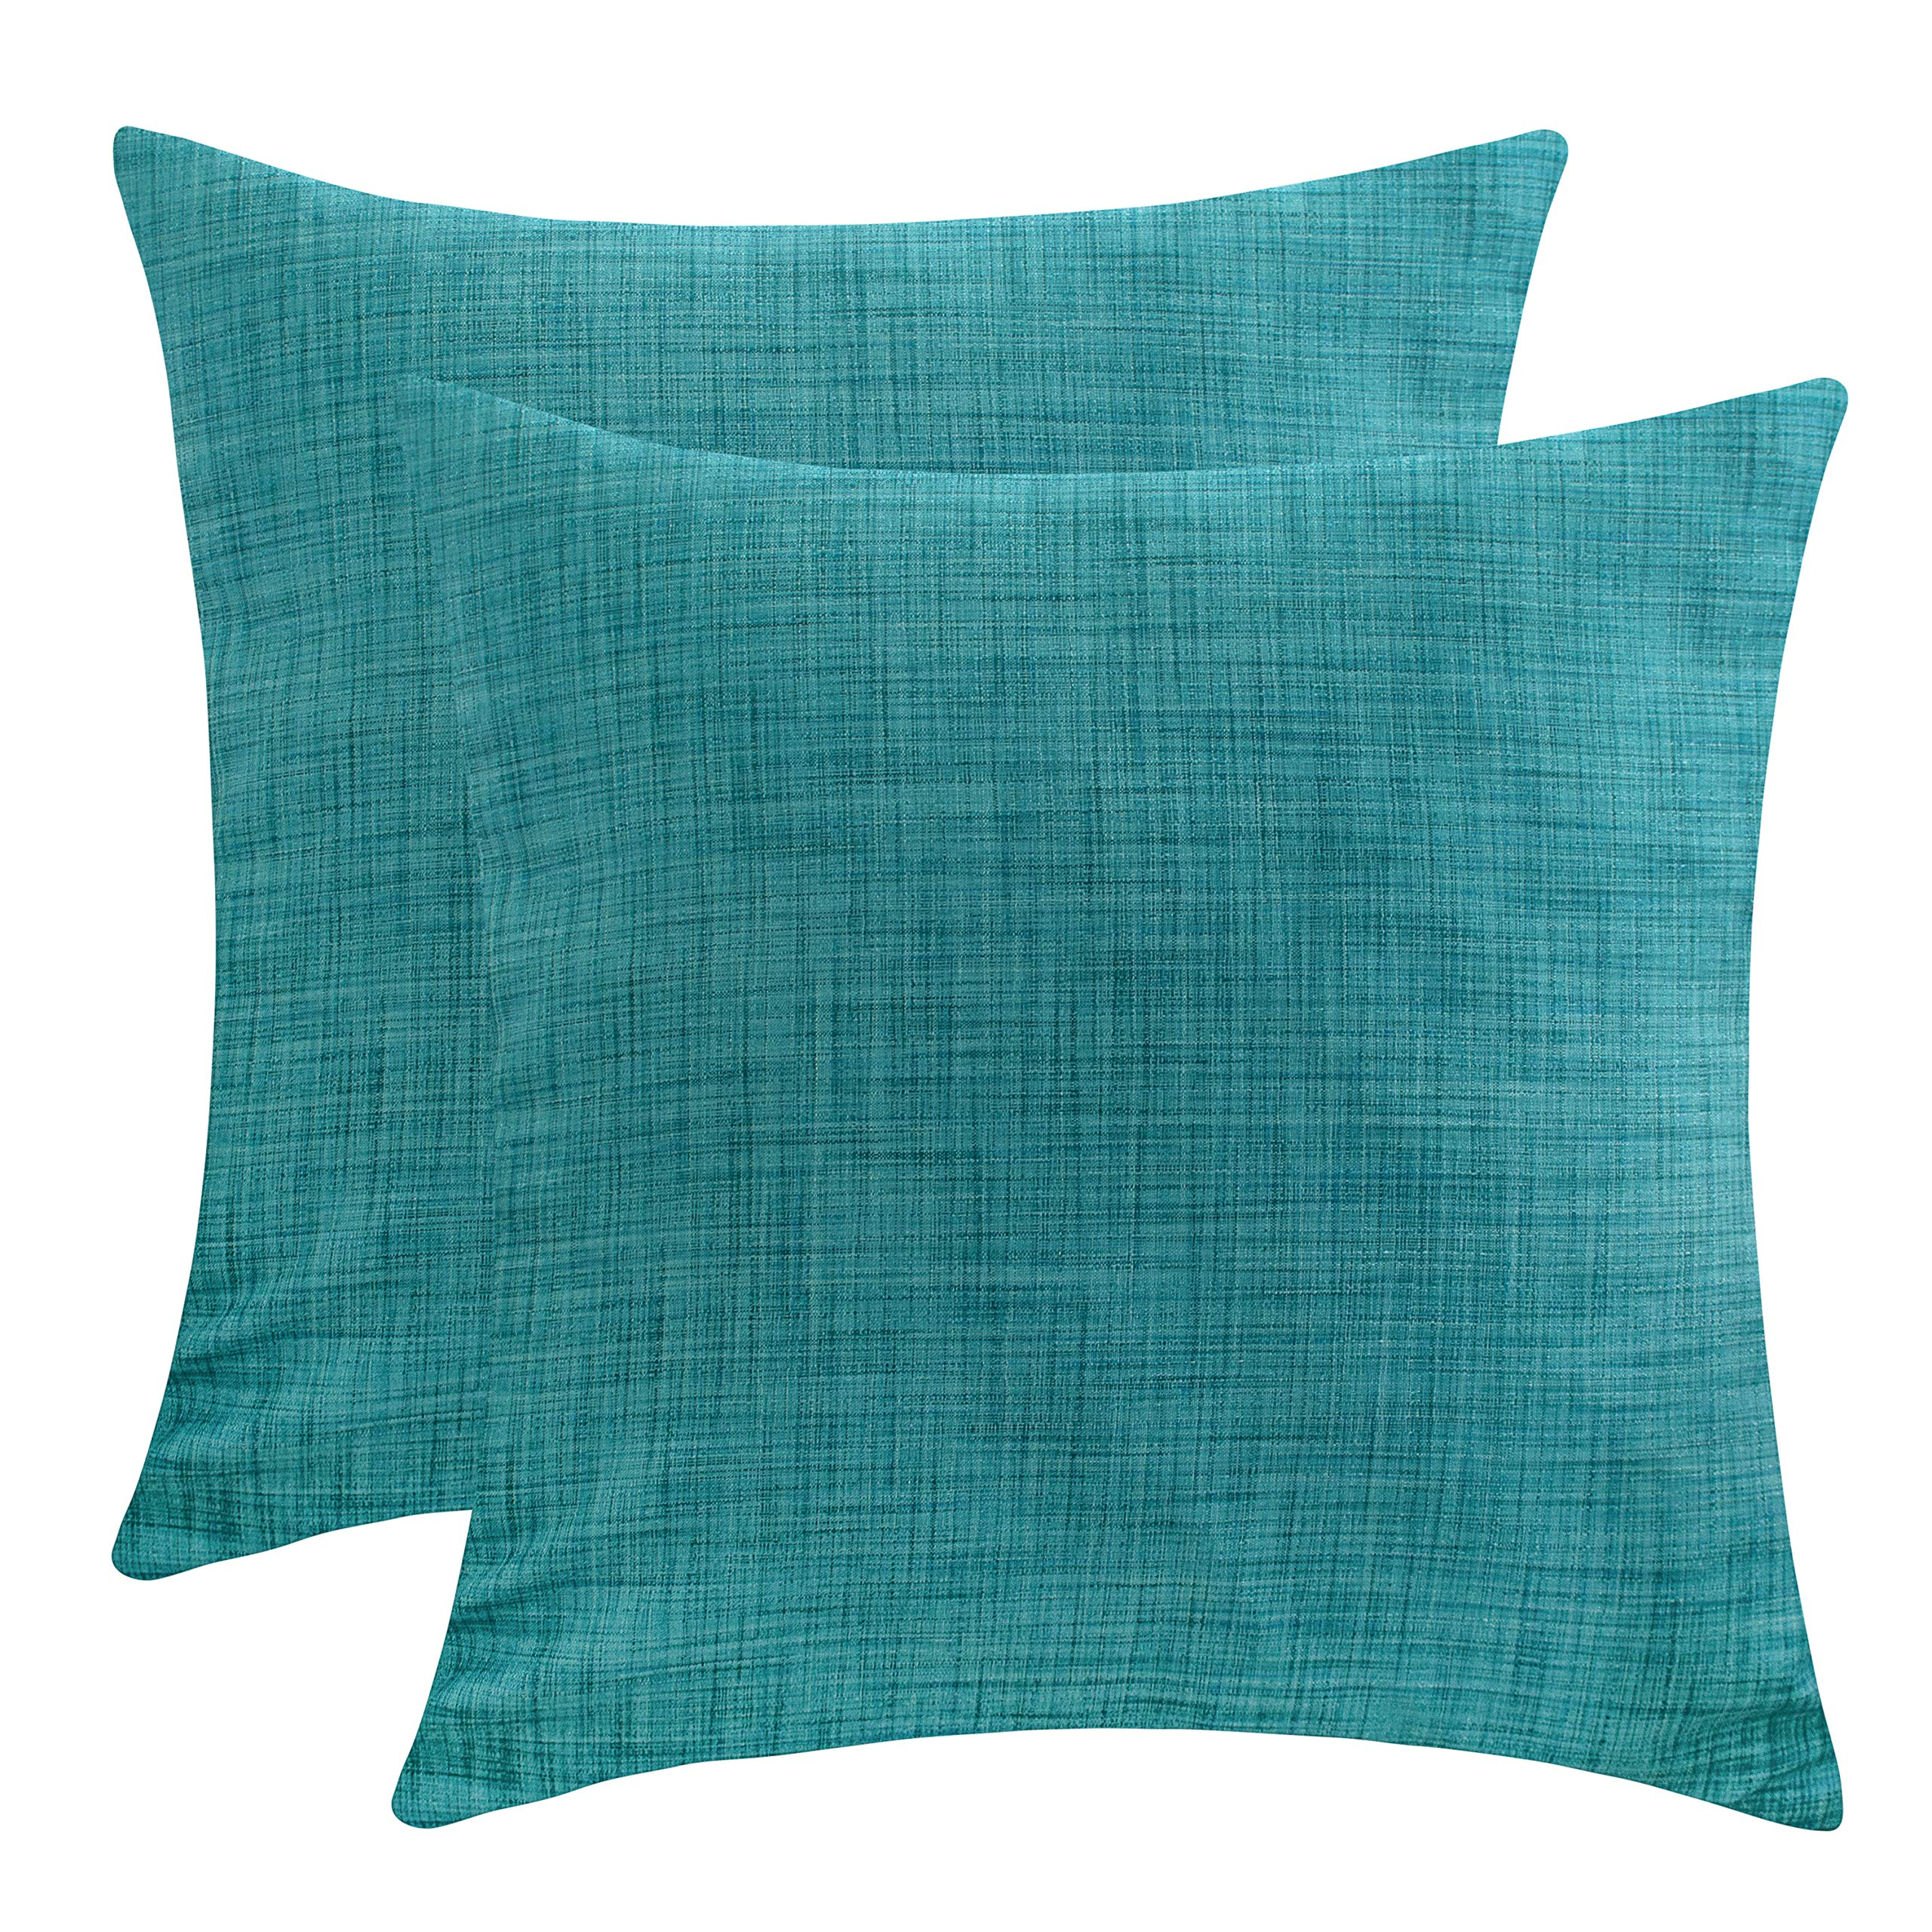 The White Petals Teal Throw Pillow Cover - (16x16 inch) | Decorative, Washable Cushion Covers for Couch, Sofa, Bedroom, Living Room - Pack of 2